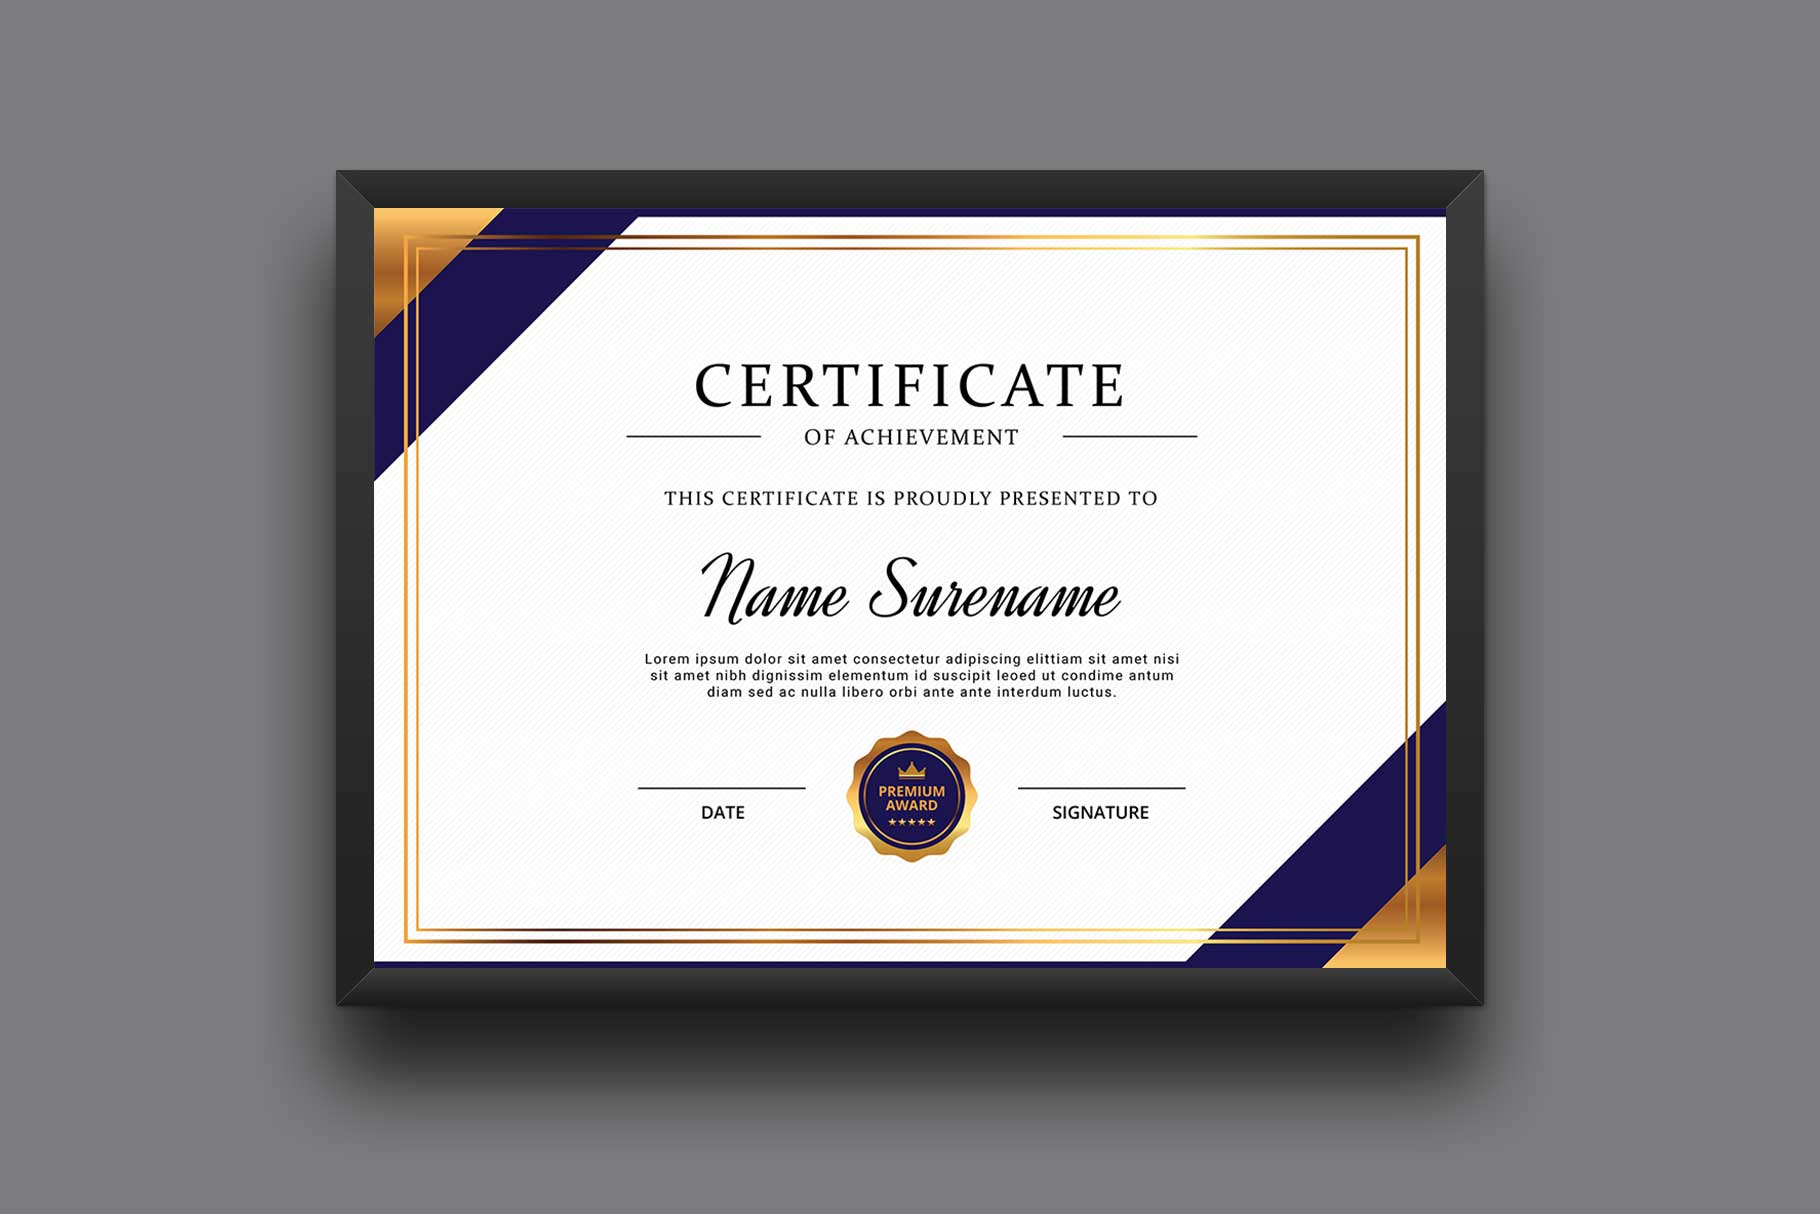 Certificate example image 2